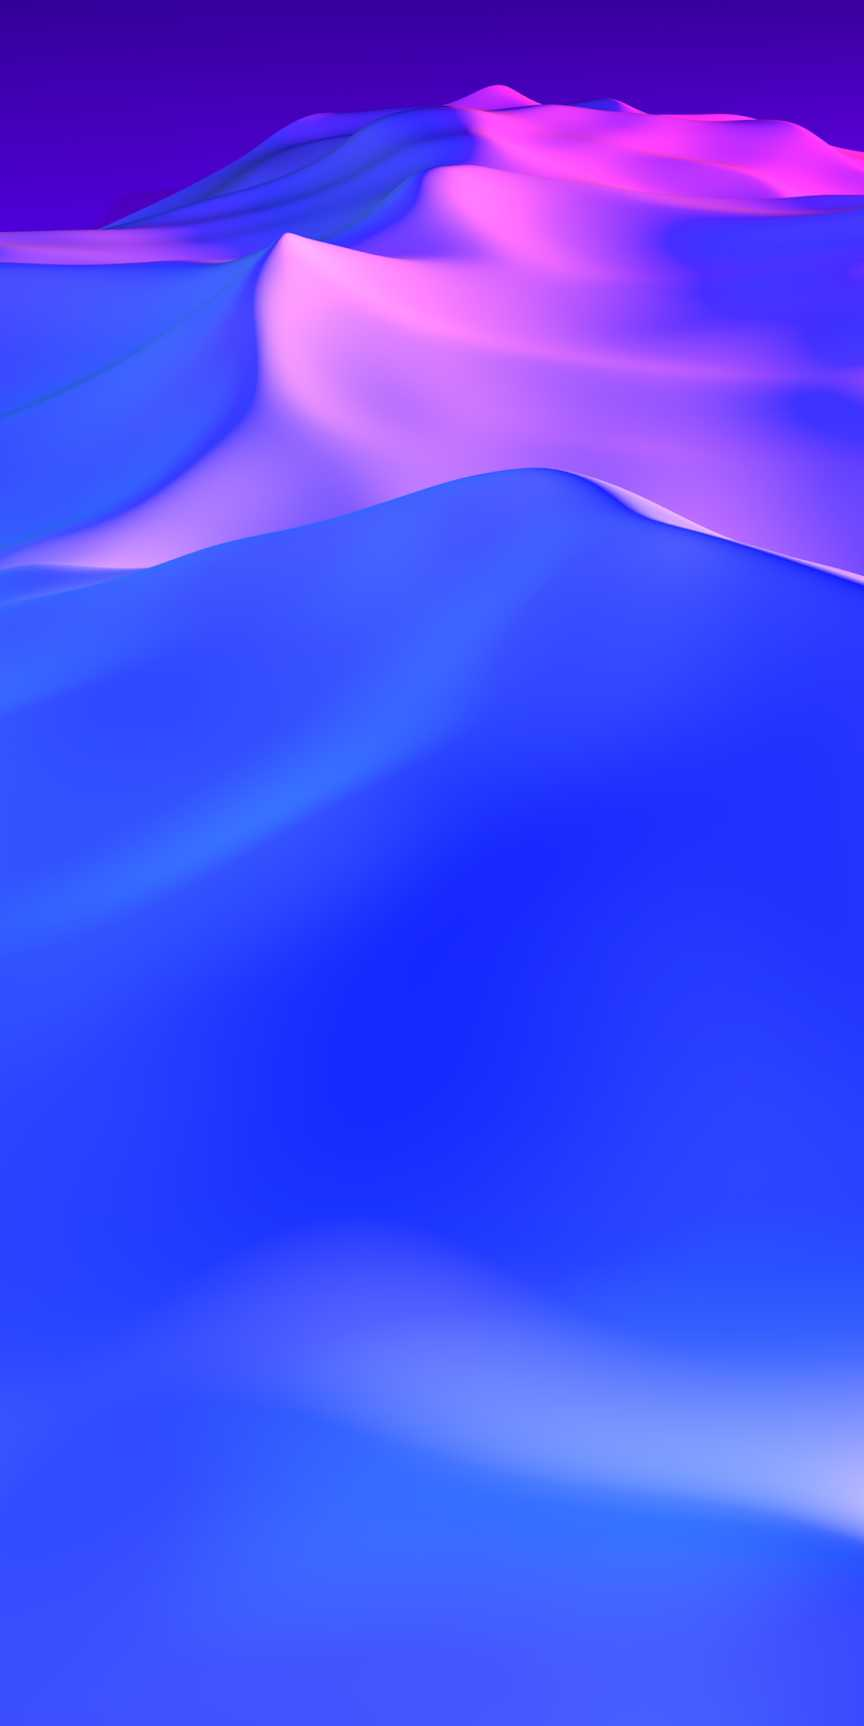 IPhone X Full HD Wallpapers - Wallpaper Cave